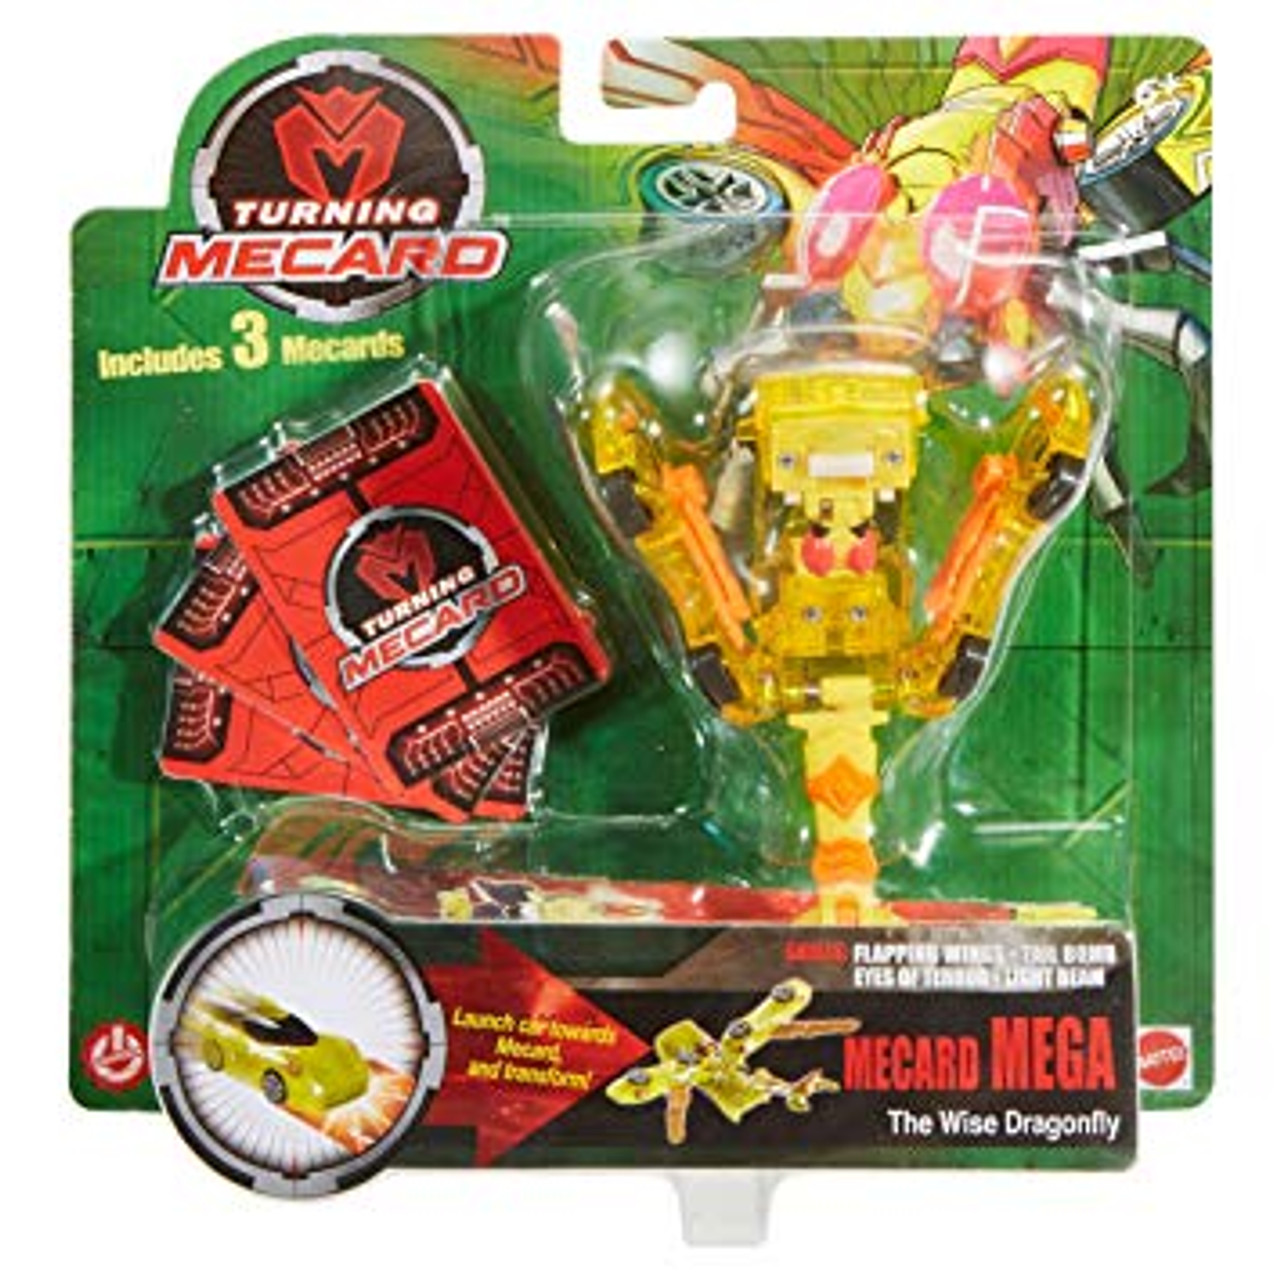 Turning Mecard - Mecard MEGA The Wise Dragonfly